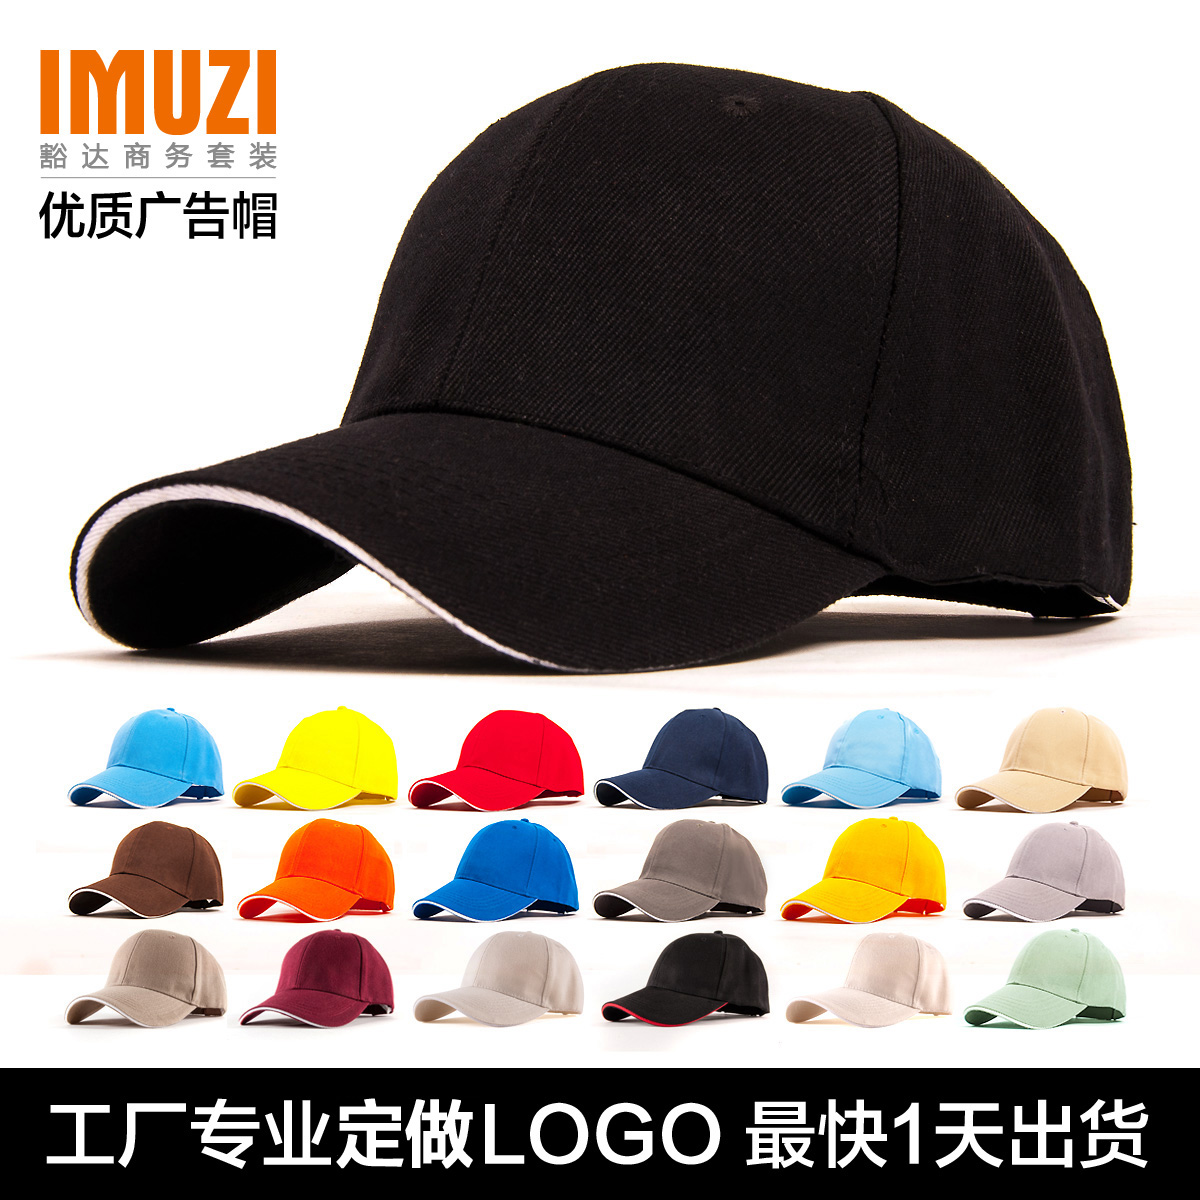 fashion Sun hat solid color baseball cap customize working cap hat for man women millinery advertising caps hats 130379(China (Mainland))